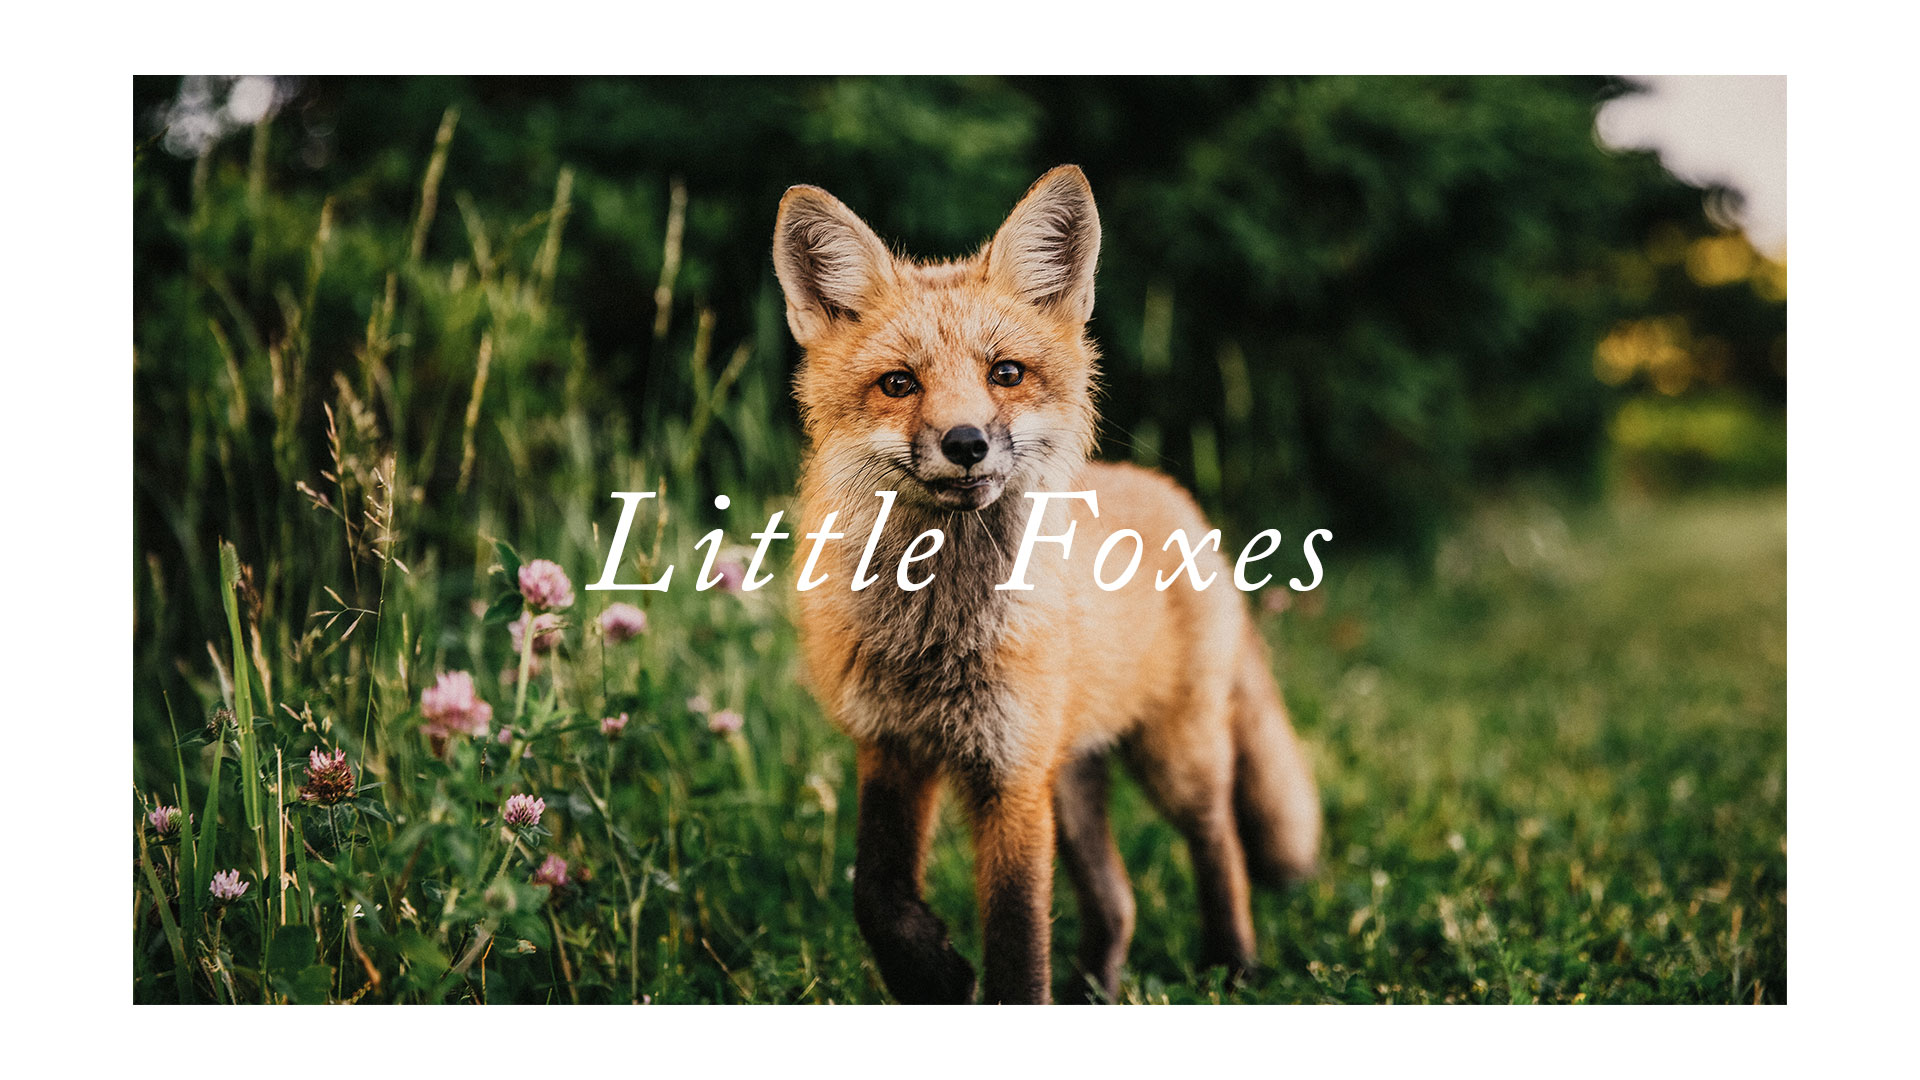 Series: Little Foxes